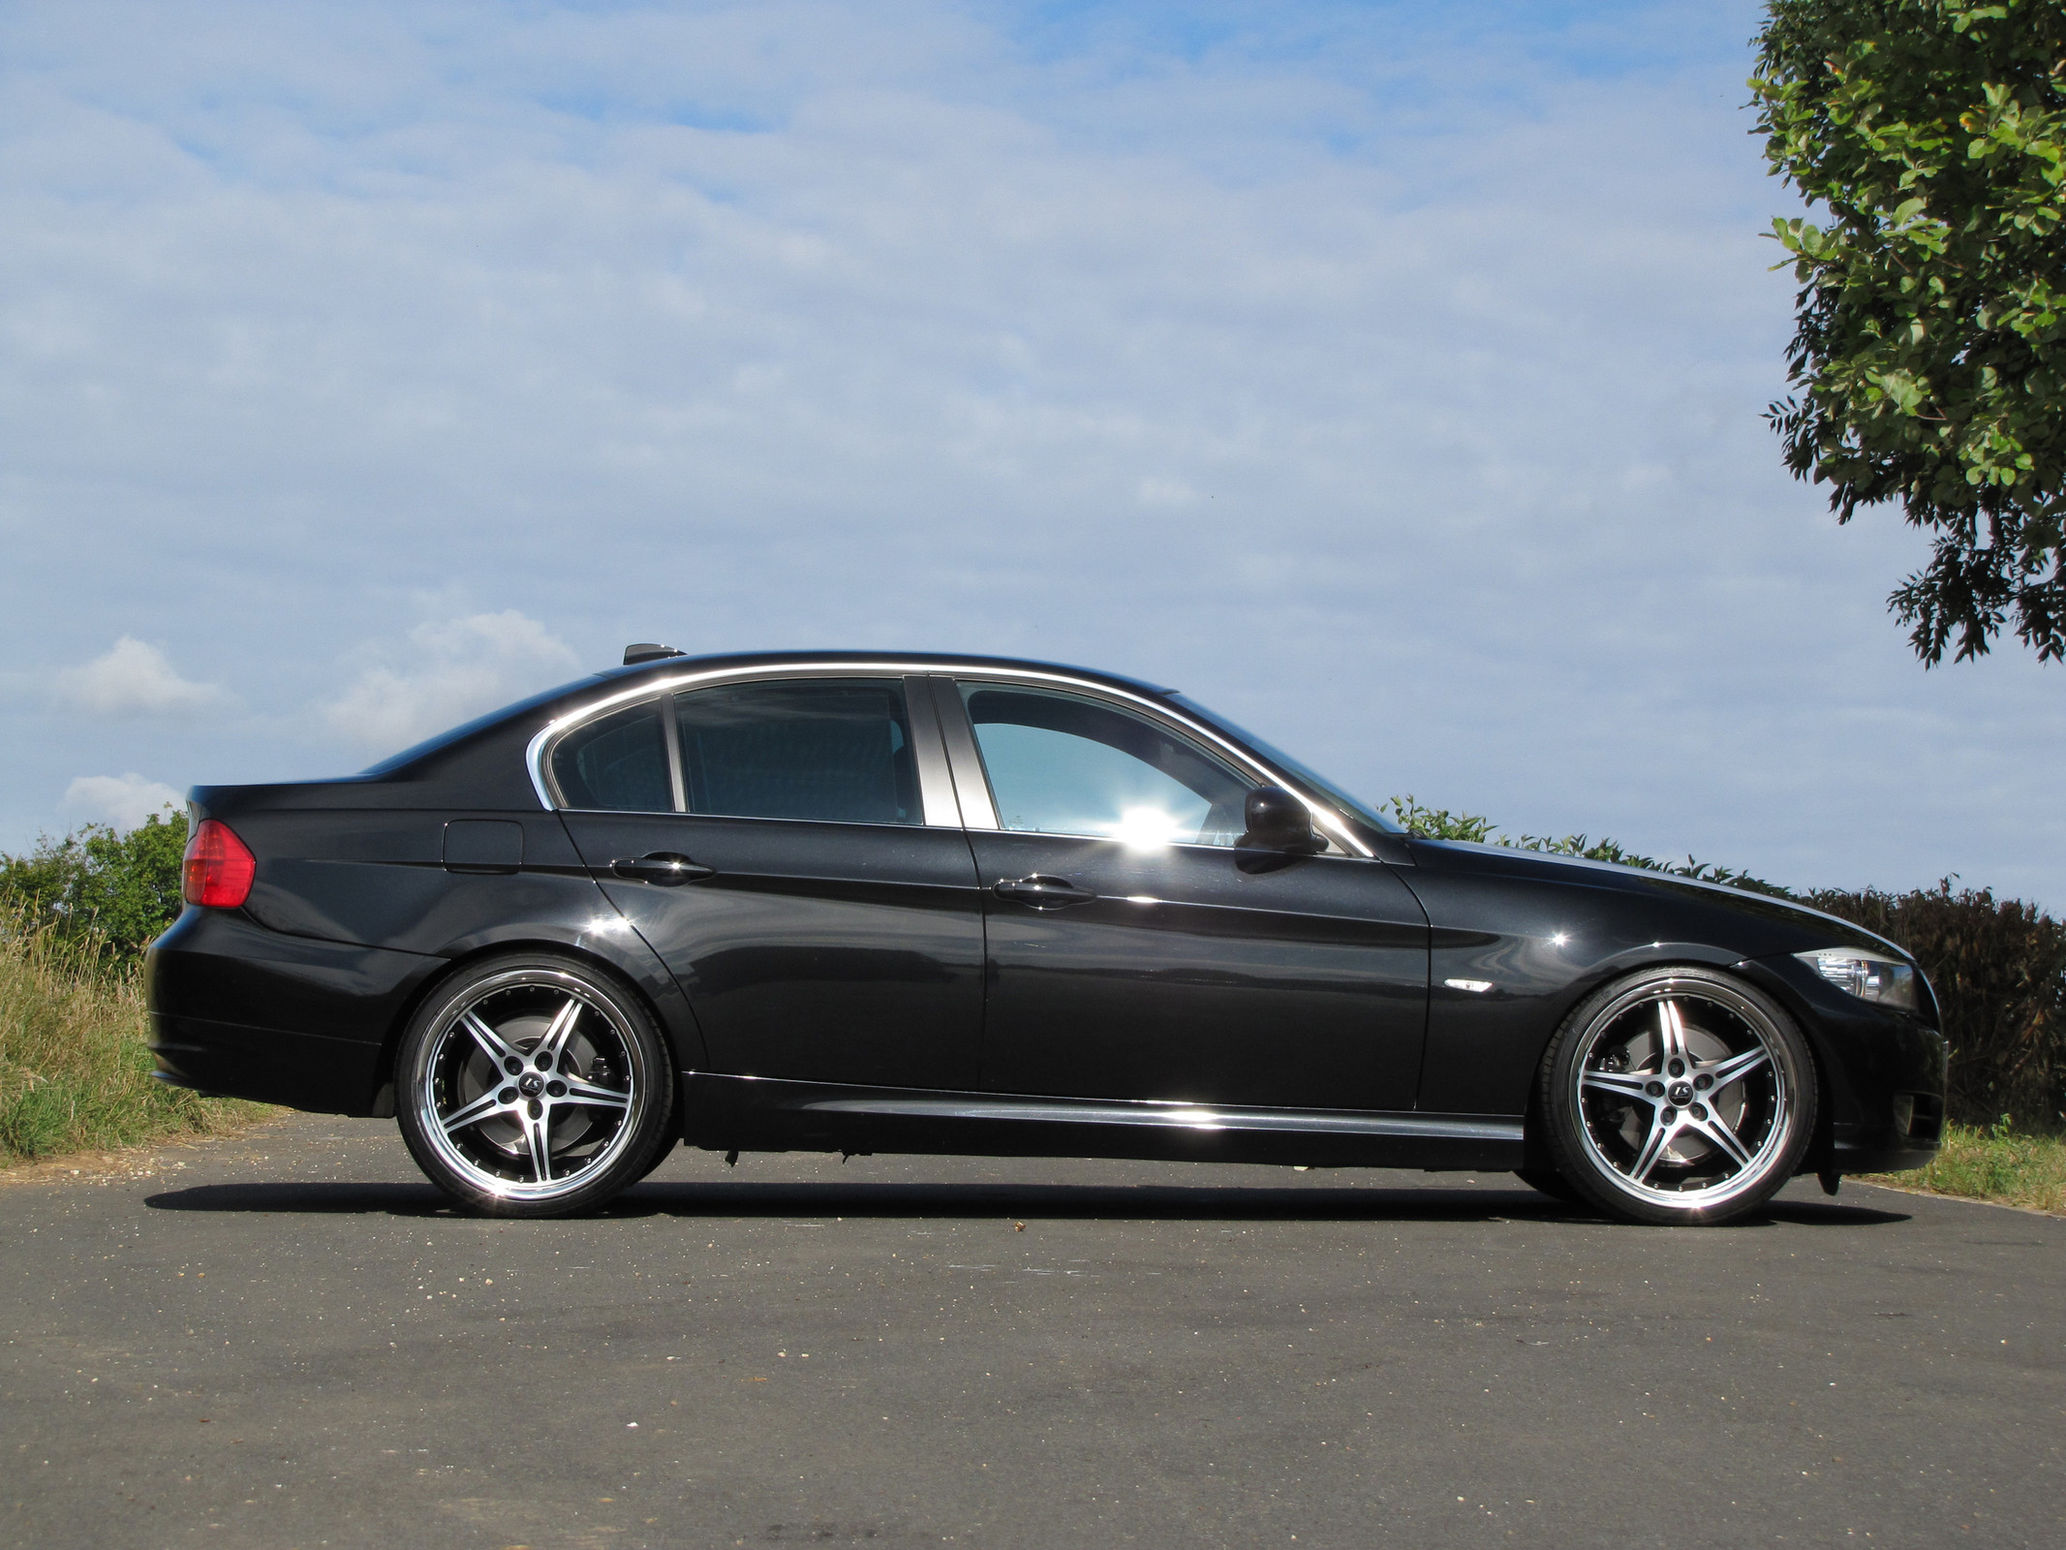 Bmw X6 35 Bmw Photo Gallery Bmw Photo Gallery Bmw X6 35i